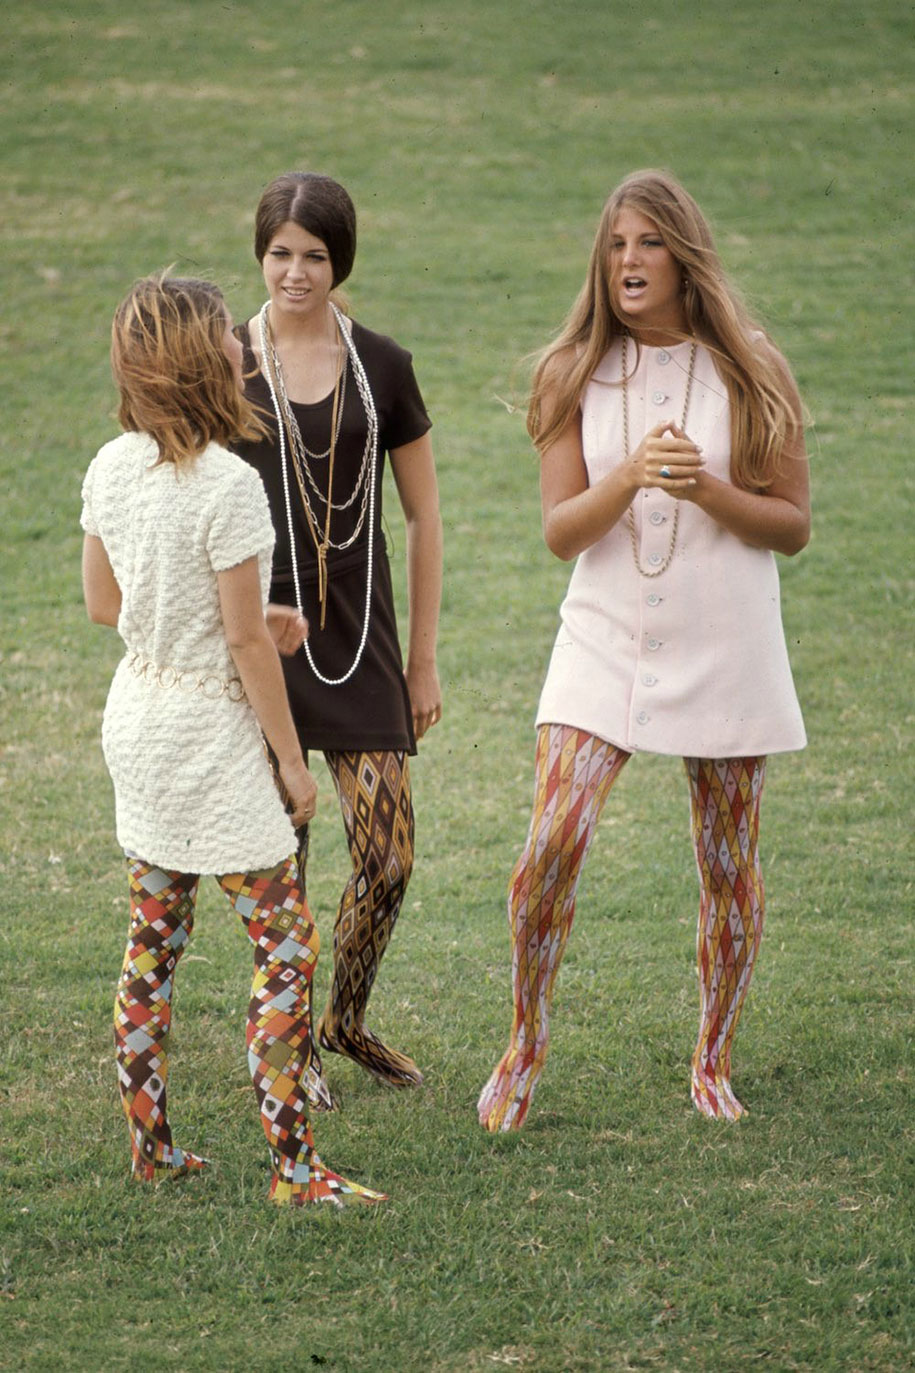 1969-hippie-high-school-counterculture-photography-10